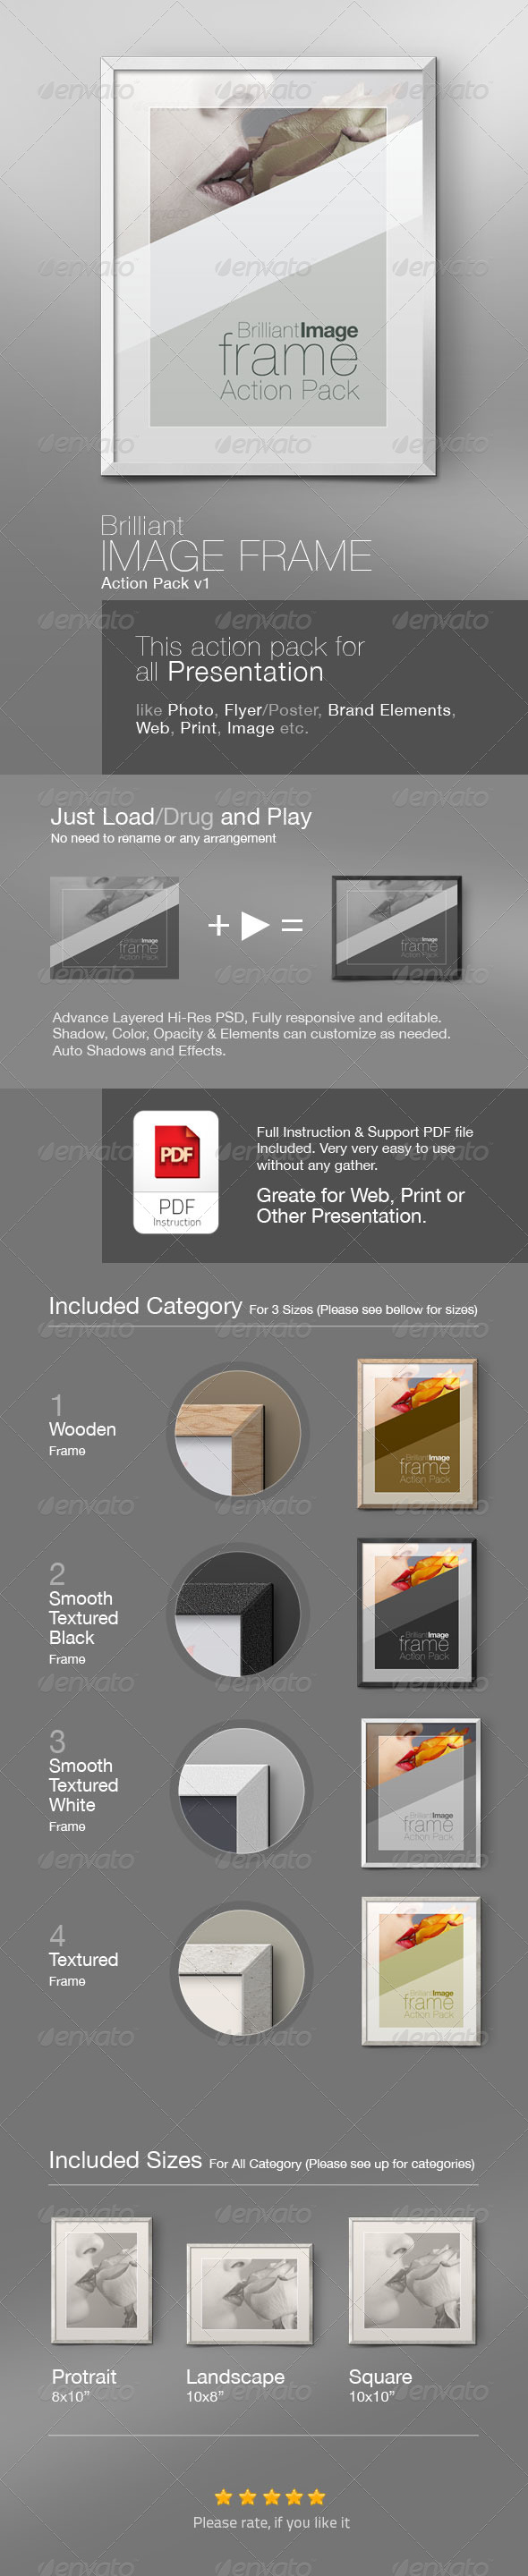 GraphicRiver Brilliant Image Photo Frame Action Pack 4798530